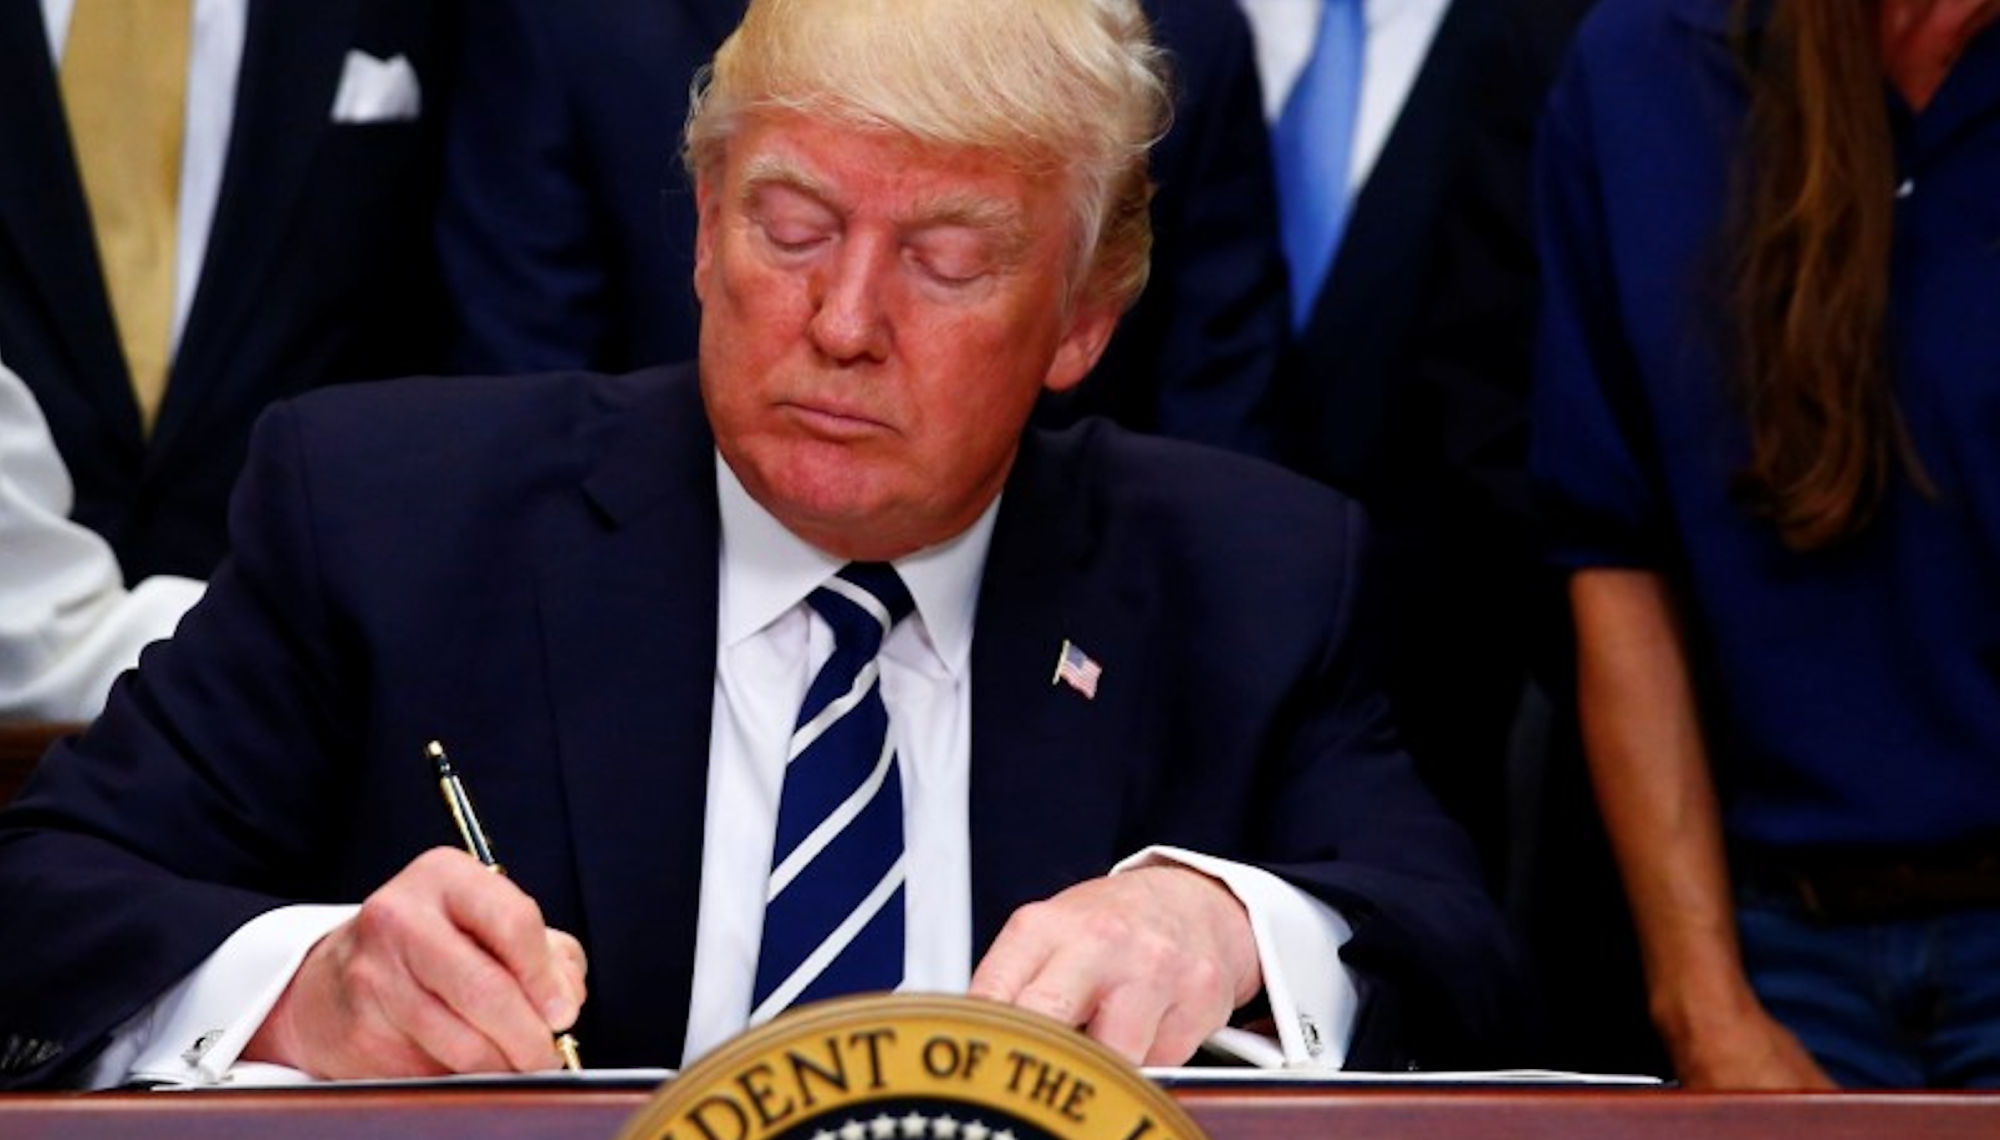 Trump signs executive order aimed at preventing sales of counterfeit goods from overseas